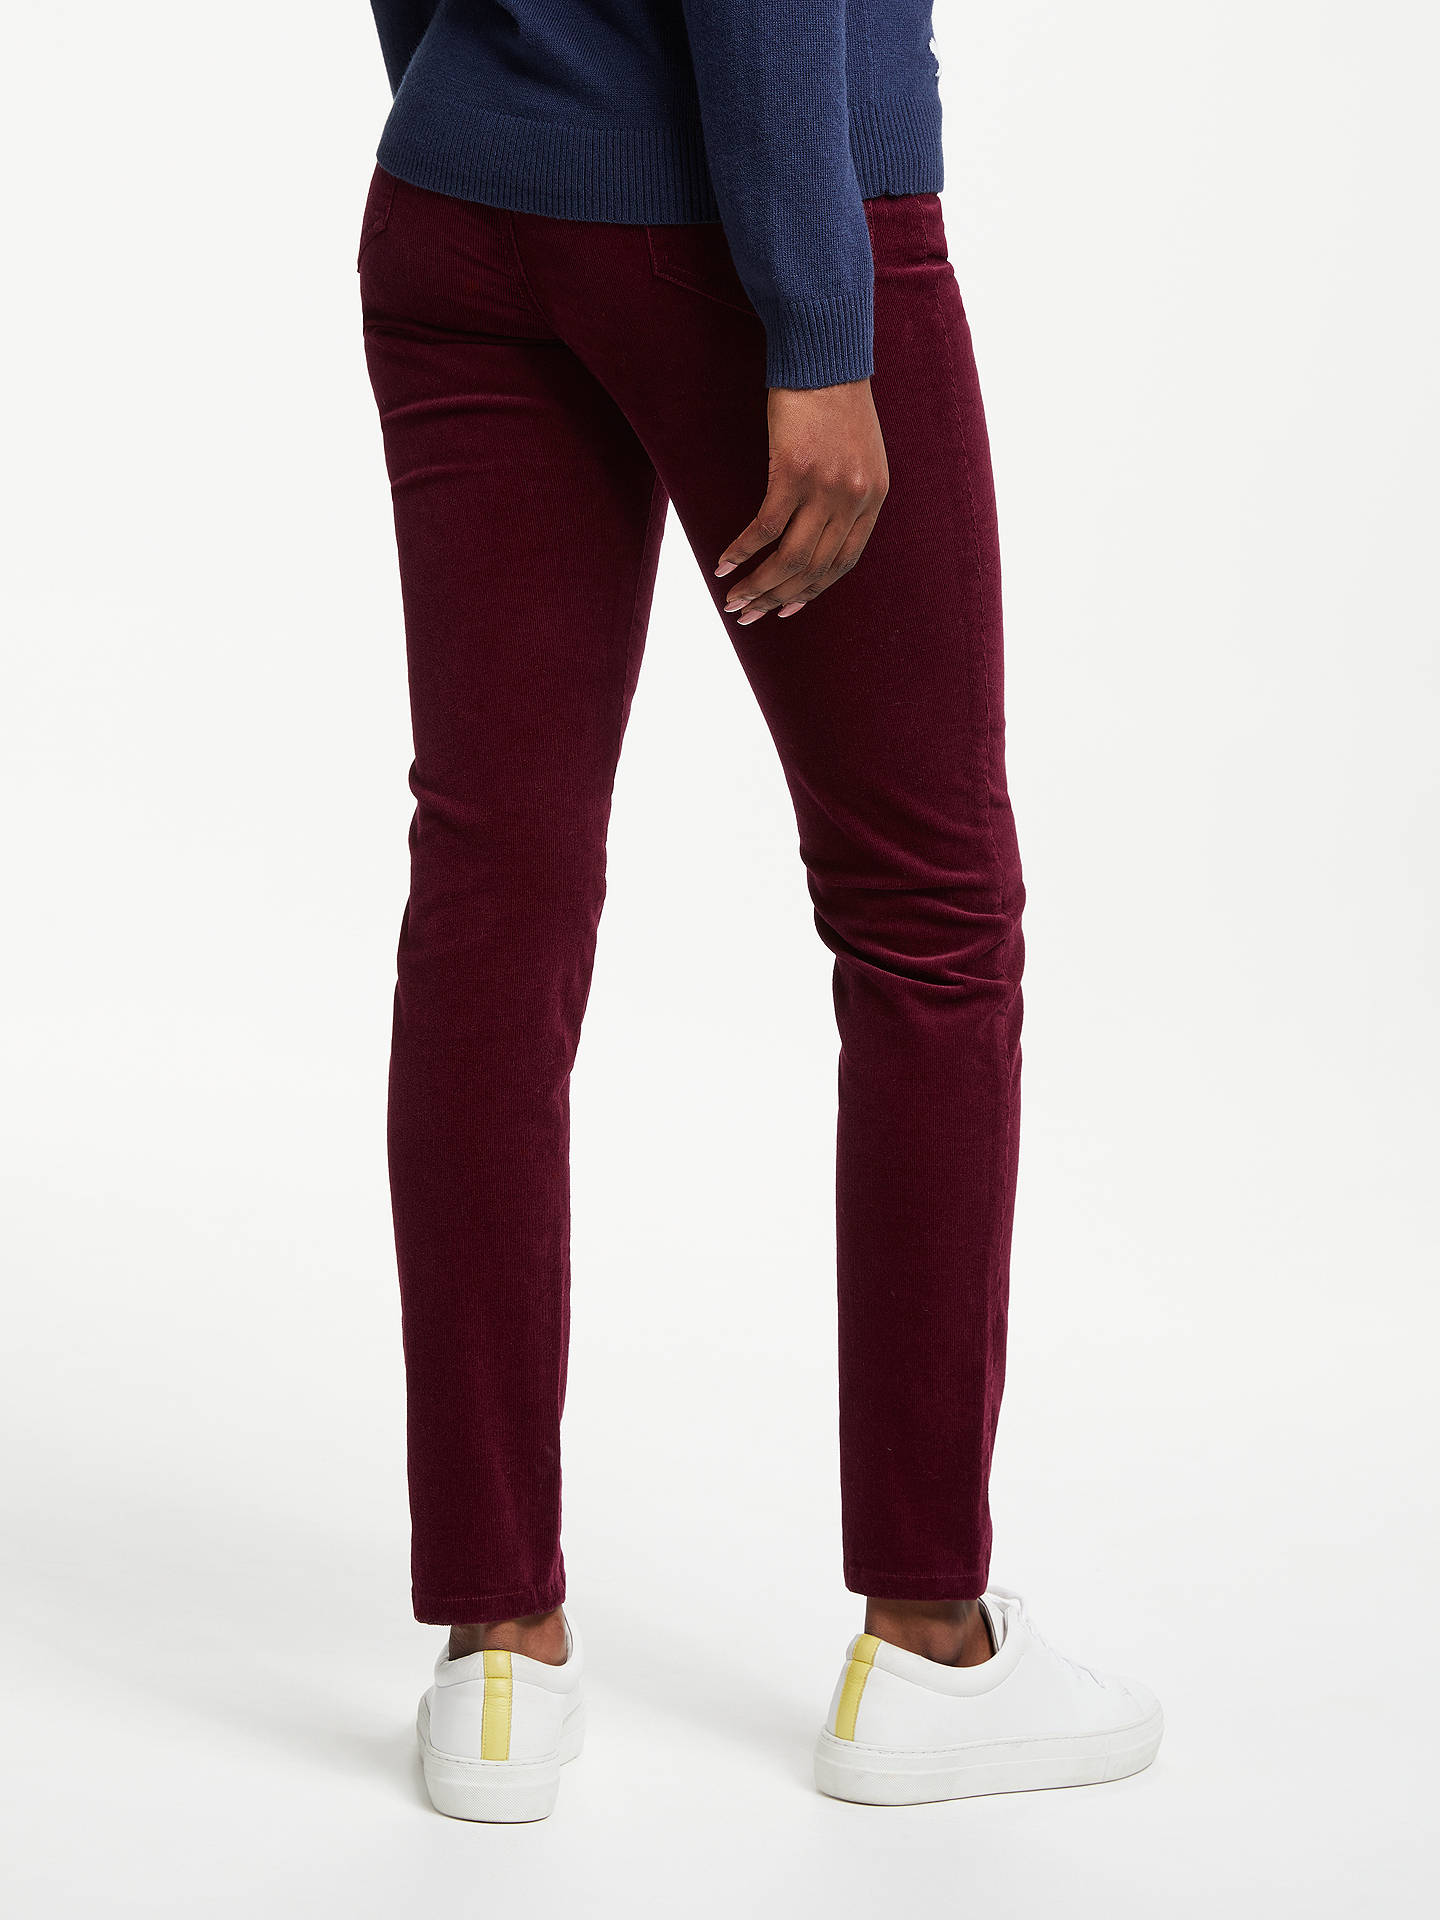 e34d6e16b1a7 ... Buy Collection WEEKEND by John Lewis Liza Slim Cord Trousers